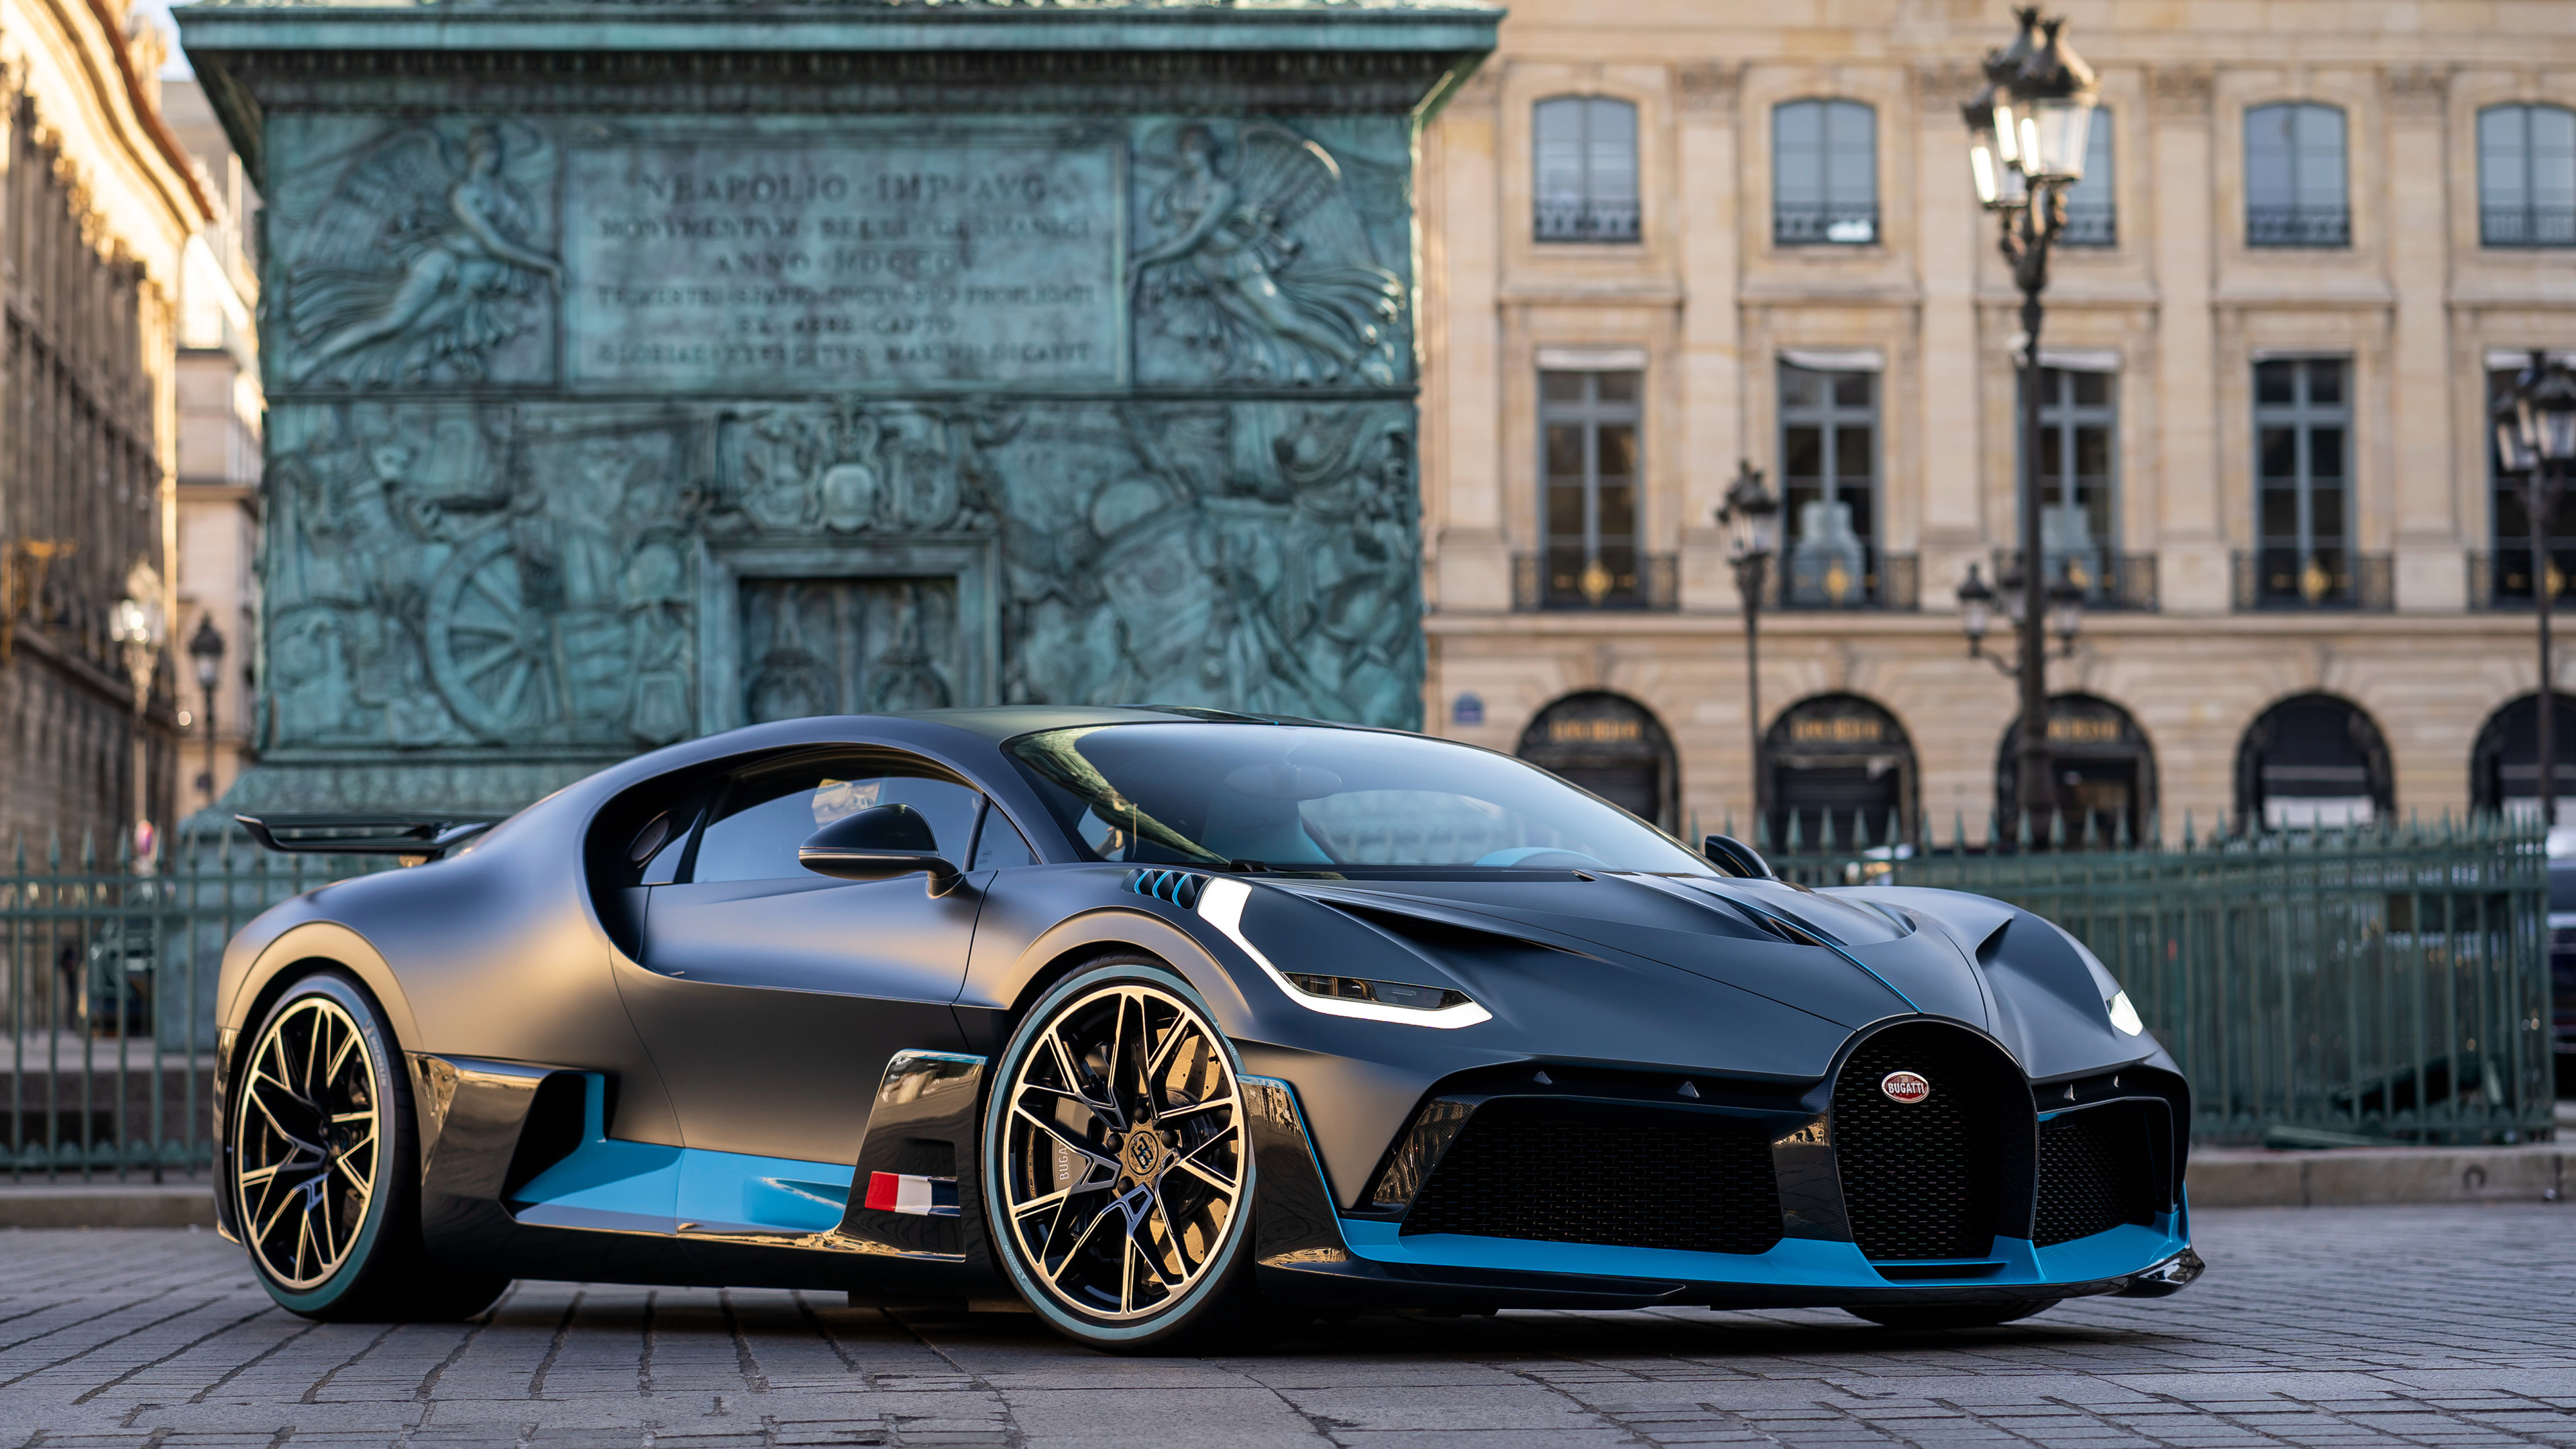 2018 bugatti divo front 4k 1539792880 - 2018 Bugatti Divo Front 4k - hd-wallpapers, cars wallpapers, bugatti wallpapers, bugatti divo wallpapers, 4k-wallpapers, 2018 cars wallpapers